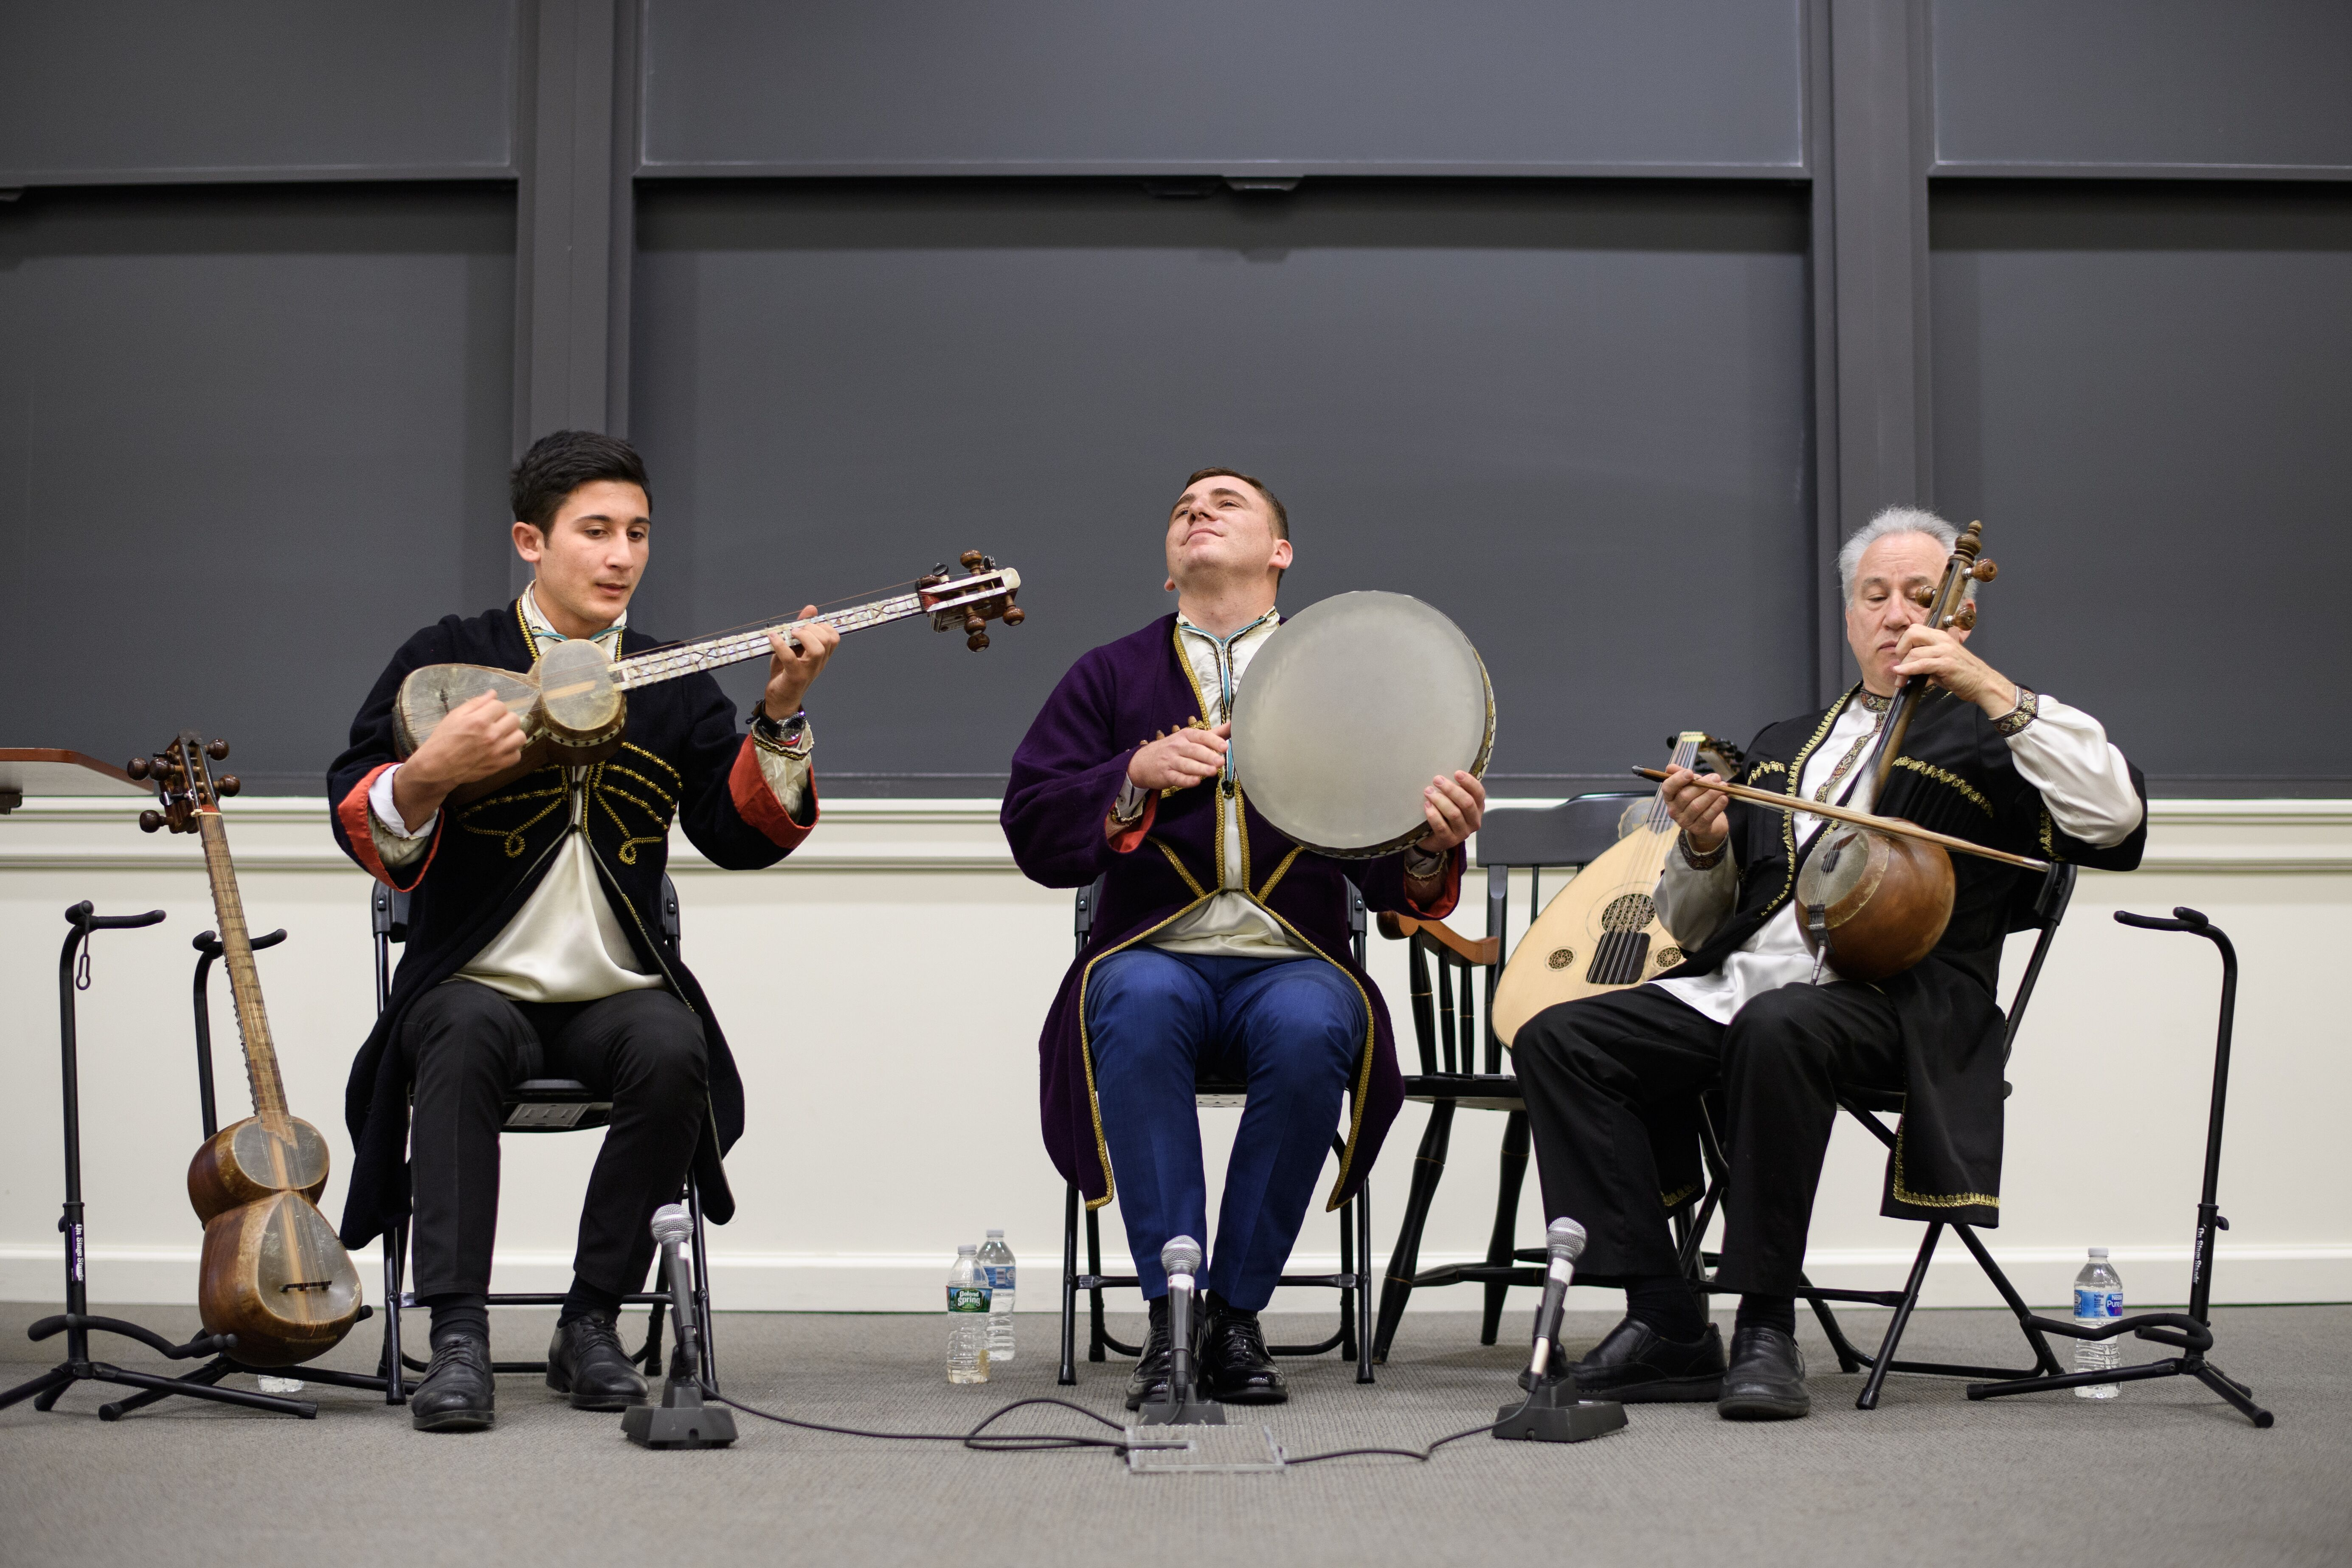 """On Wednesday, May 1, the Program in Russian, East European and Eurasian Studies (REEES) showcased """"Music of the Middle East and Eurasia: A Presentation and Performance of Azerbaijani Mugam."""" Photo by Sameer A. Khan/Fotobuddy"""